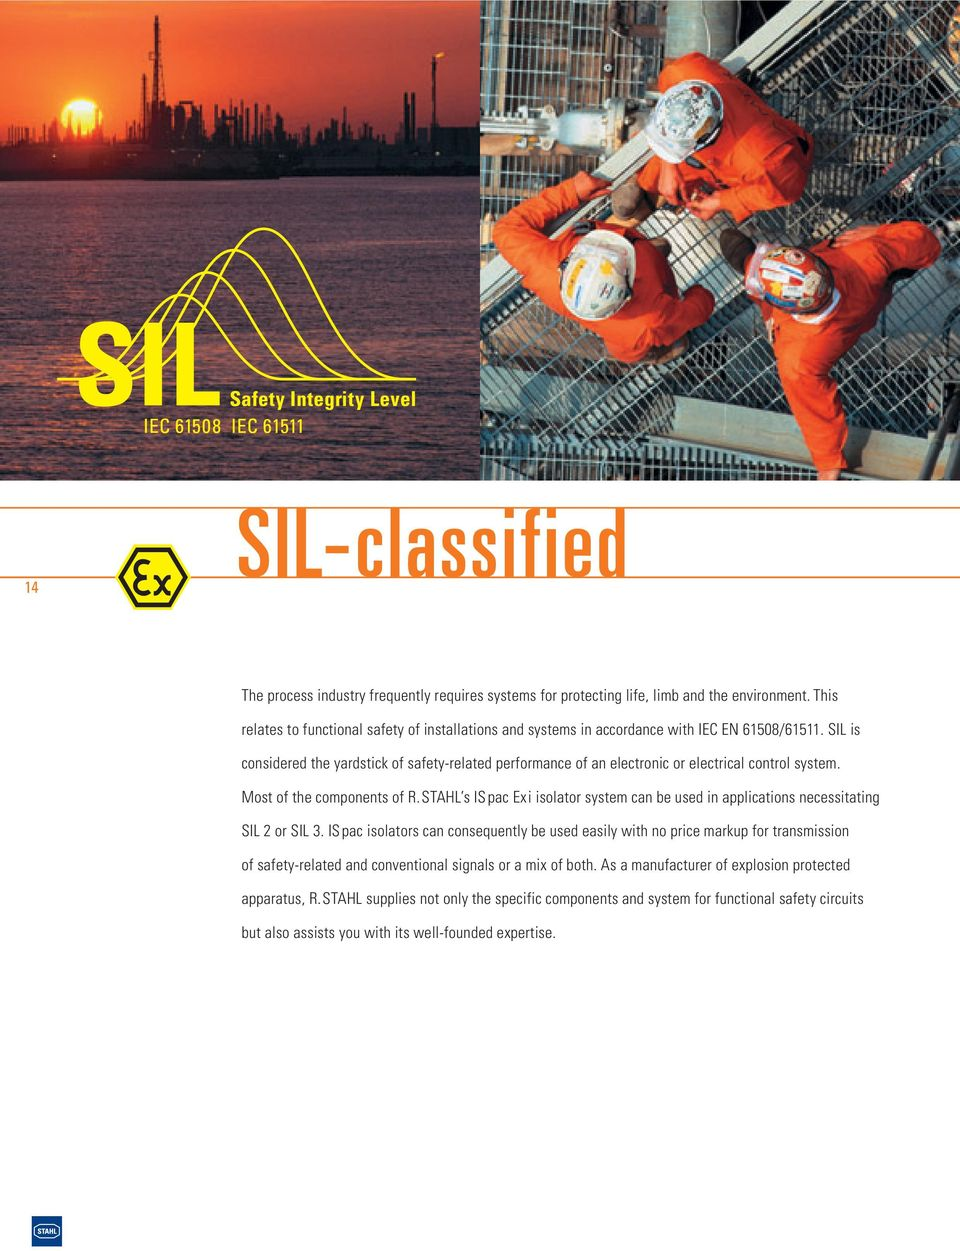 SIL is considered the yardstick of safety-related performance of an electronic or electrical control system. Most of the components of R.